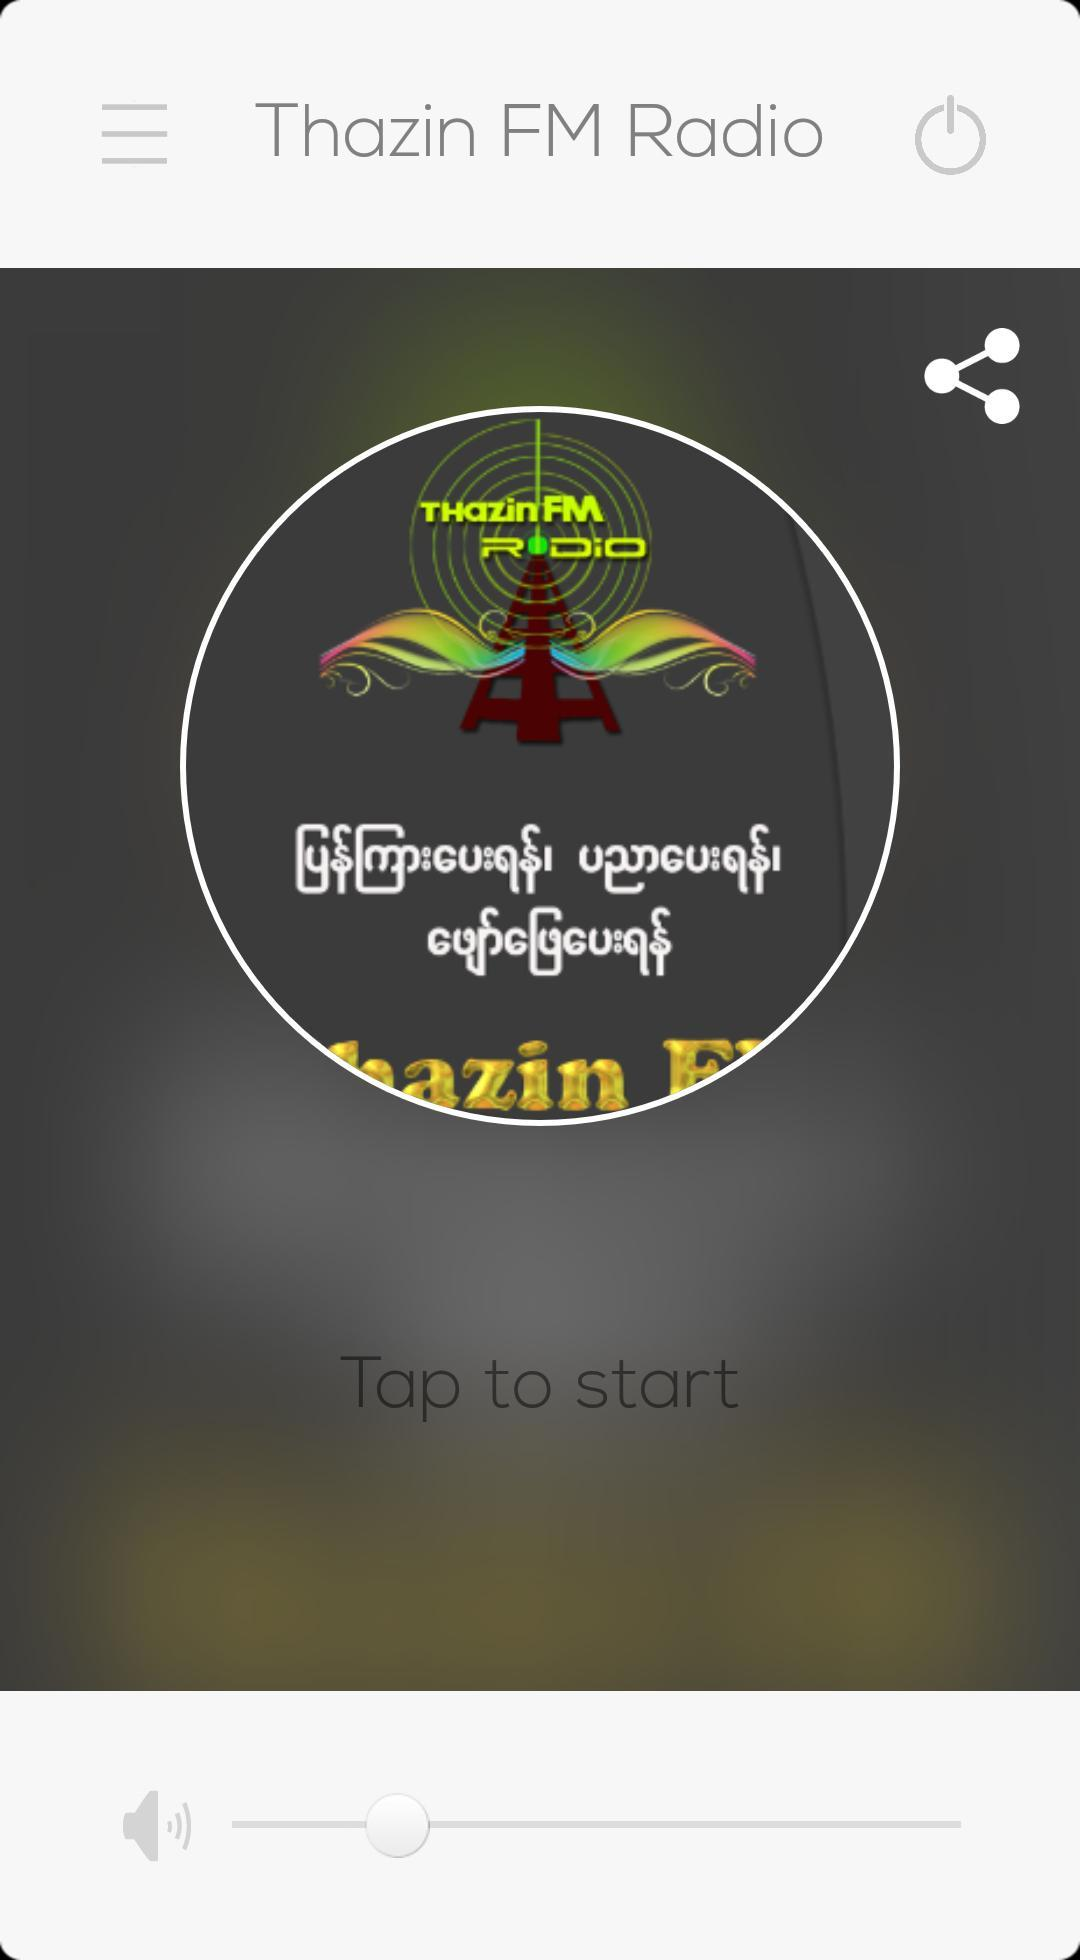 Thazin FM Radio for Android - APK Download